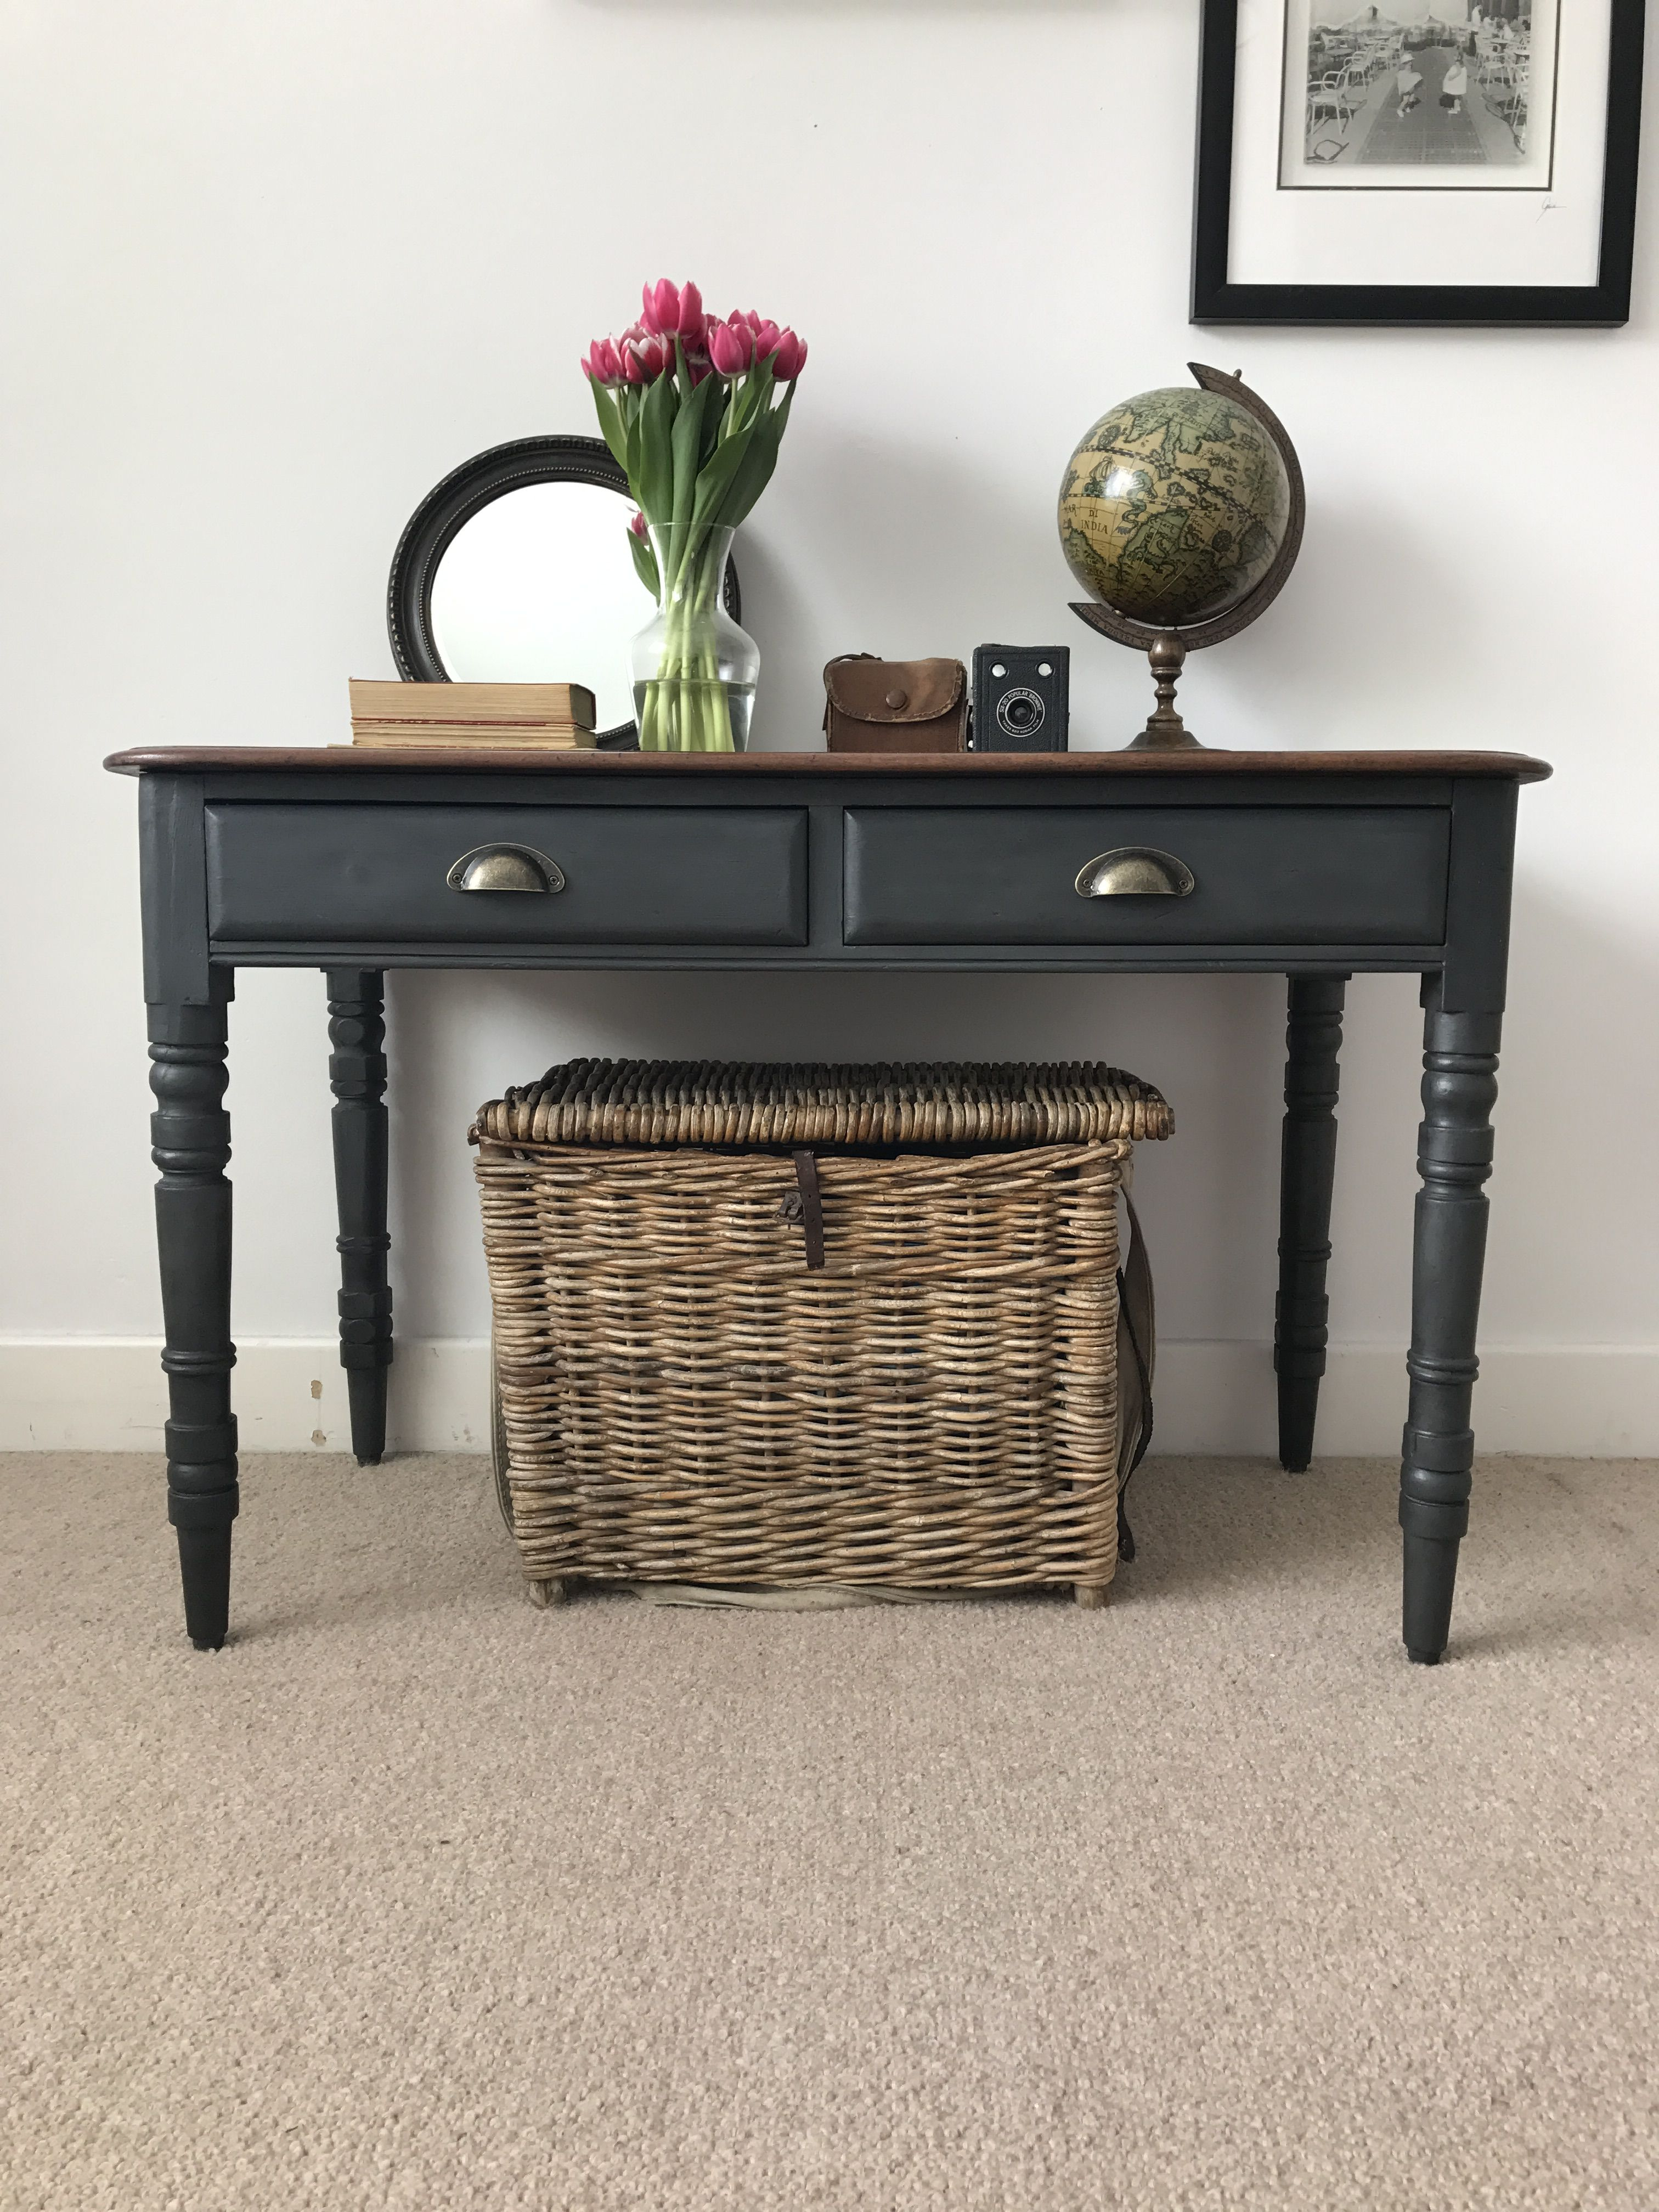 Brilliant Antique Charcoal Console Table Renovated Beautifully 295 Squirreltailoven Fun Painted Chair Ideas Images Squirreltailovenorg